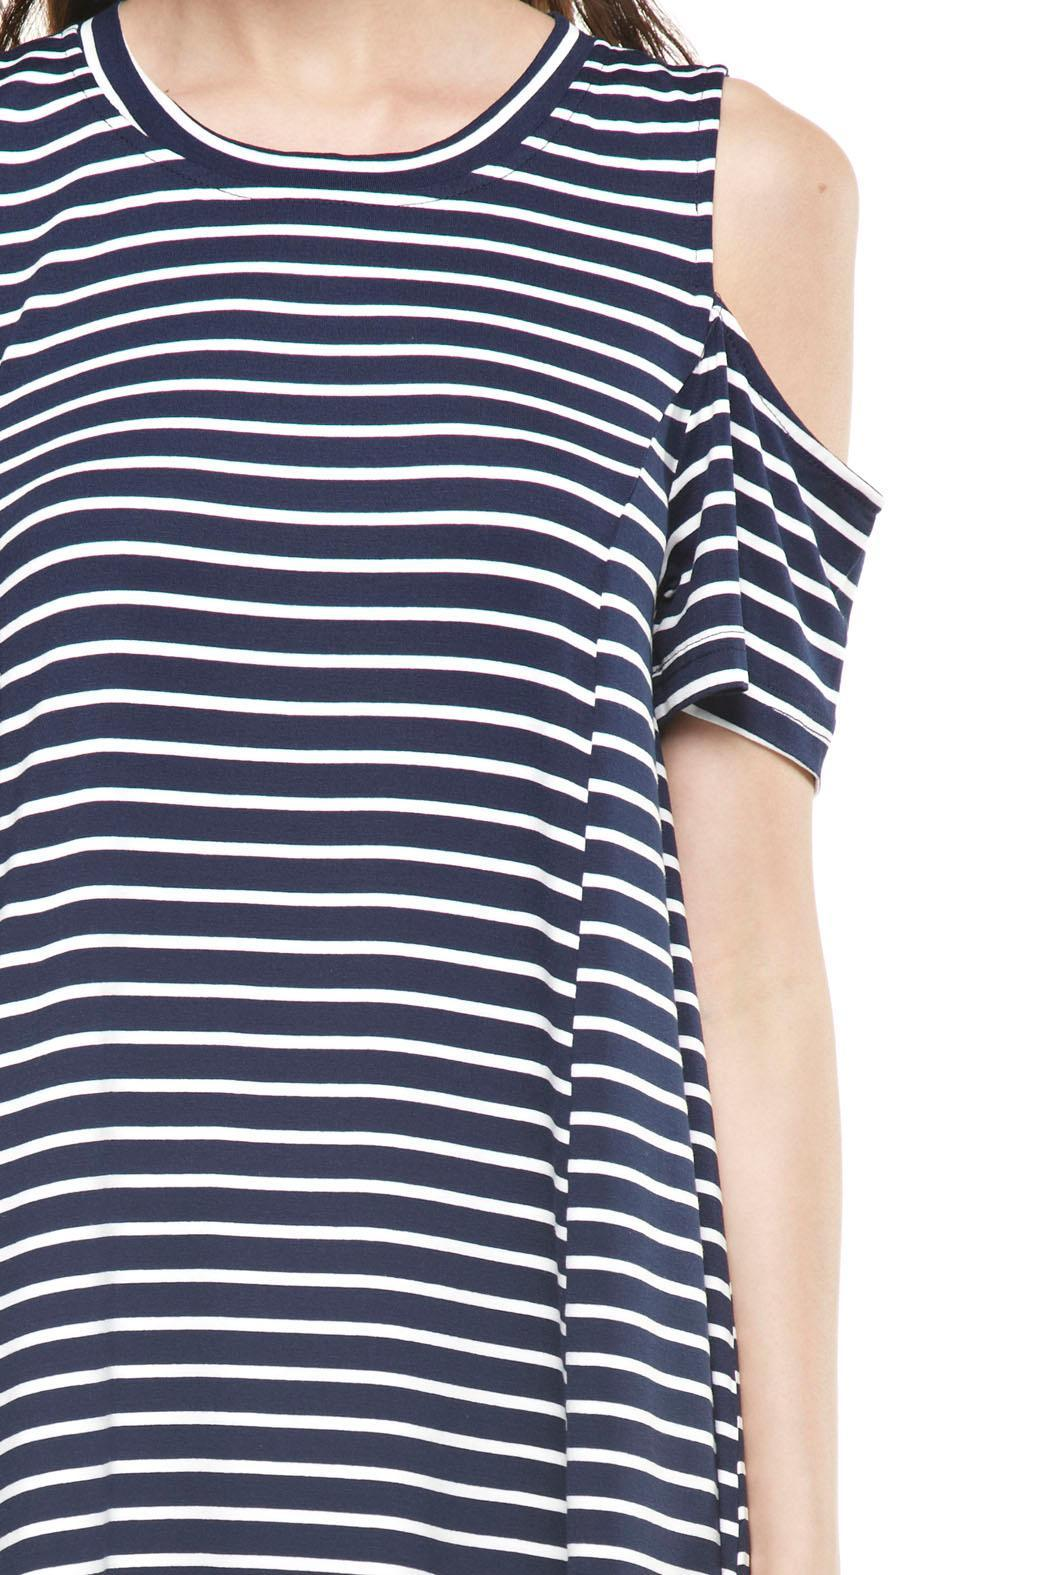 b68c76ab0e4 LoveRiche Ships-Ahoy Stripe Dress from California by Apricot Lane ...